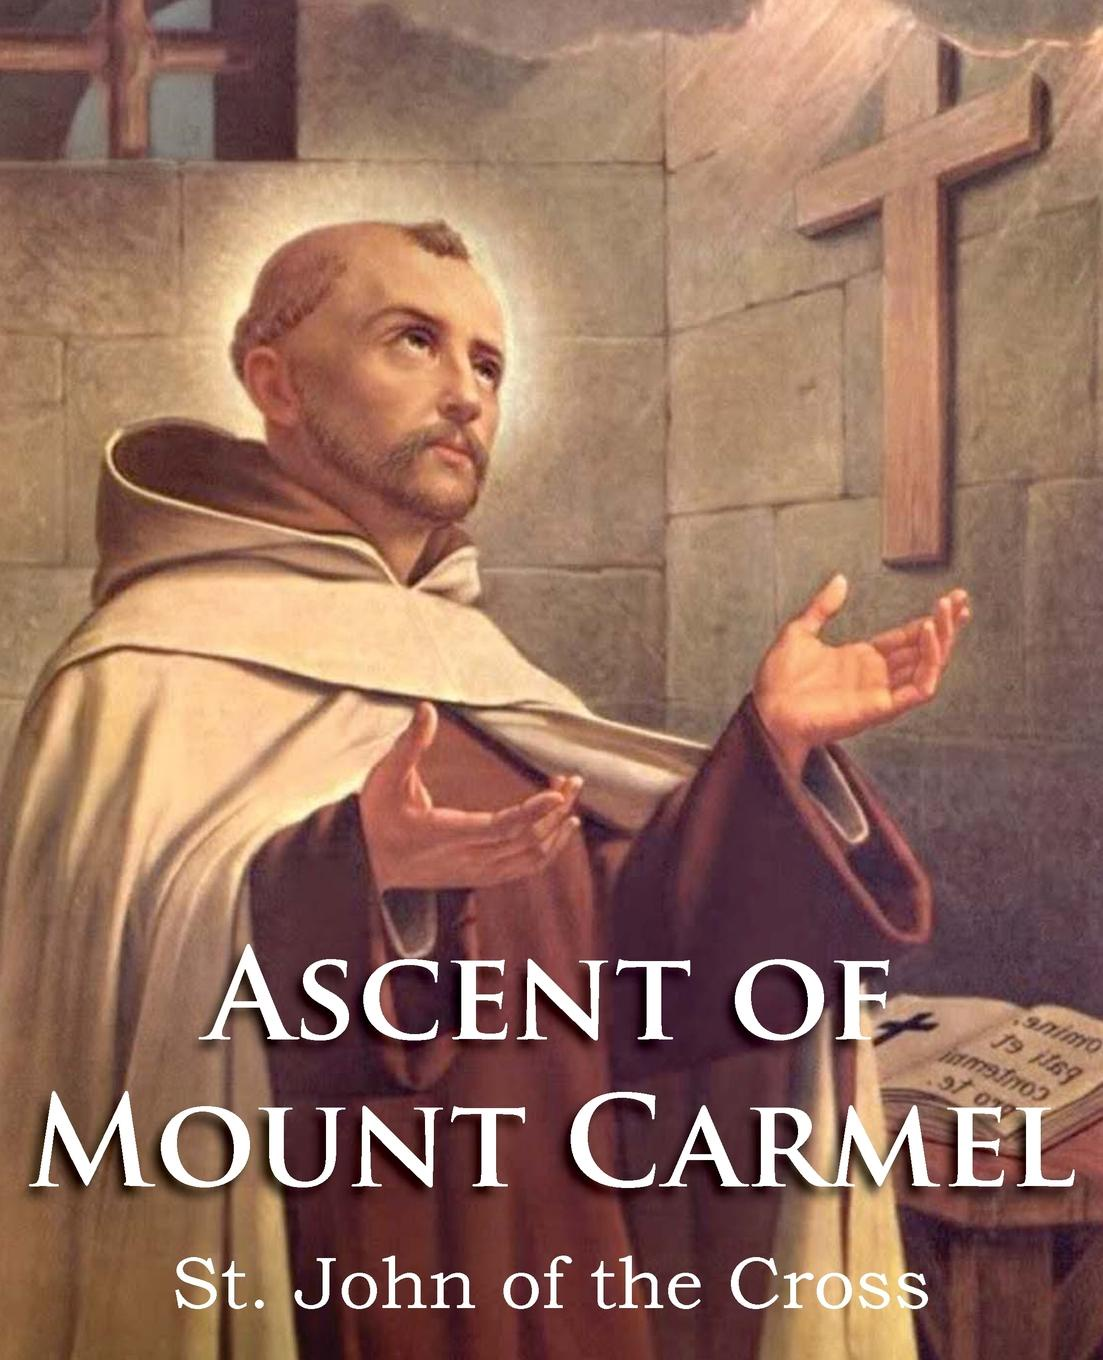 Saint John of the Cross, E. Allison Peers The Ascent of Mount Carmel недорого